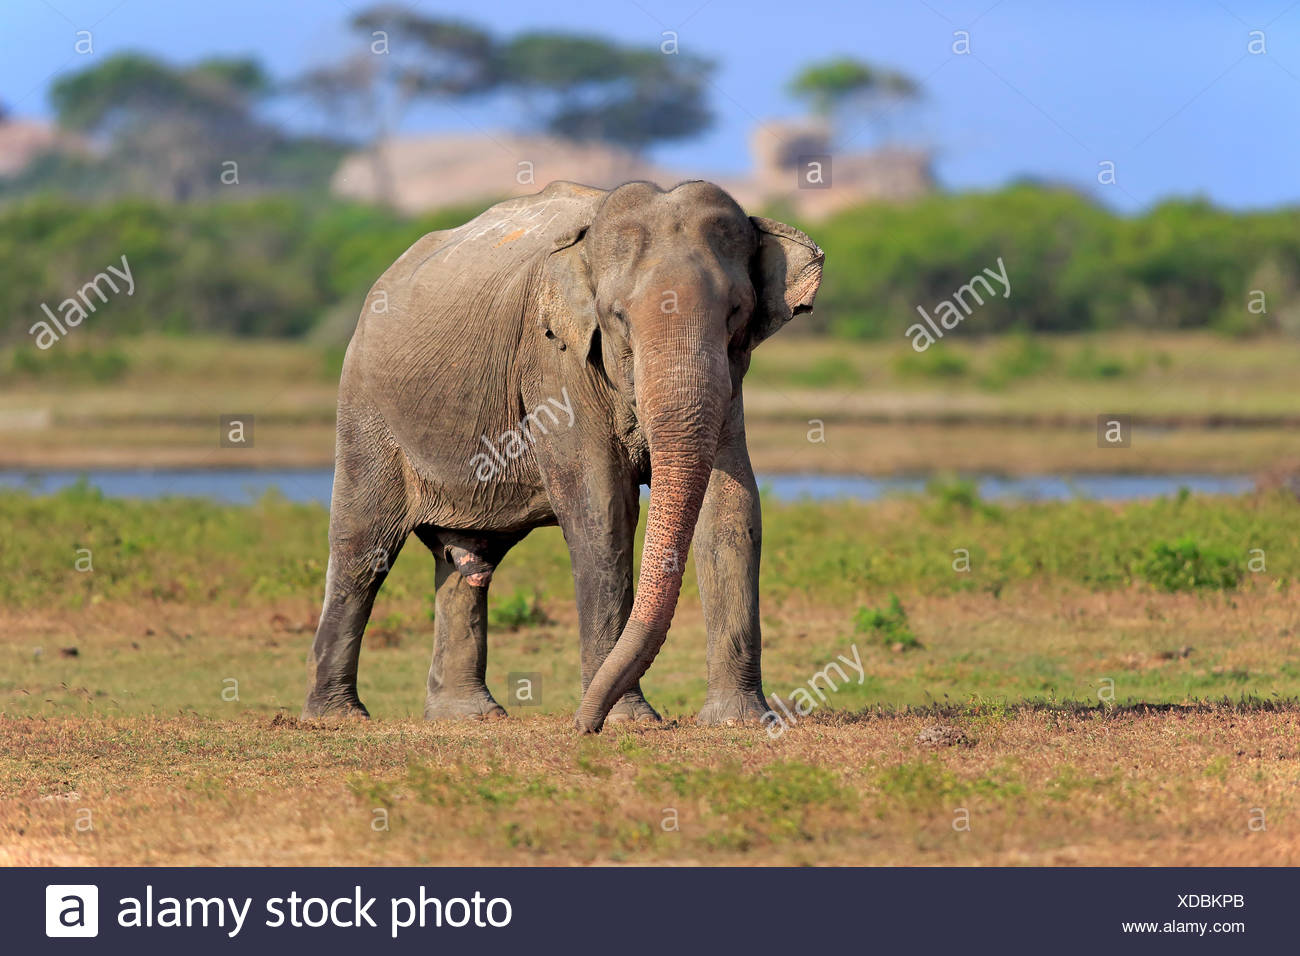 L'éléphant du Sri Lanka (Elephas maximus maximus), mâle adulte, l'alimentation, le parc national de Yala, au Sri Lanka Photo Stock